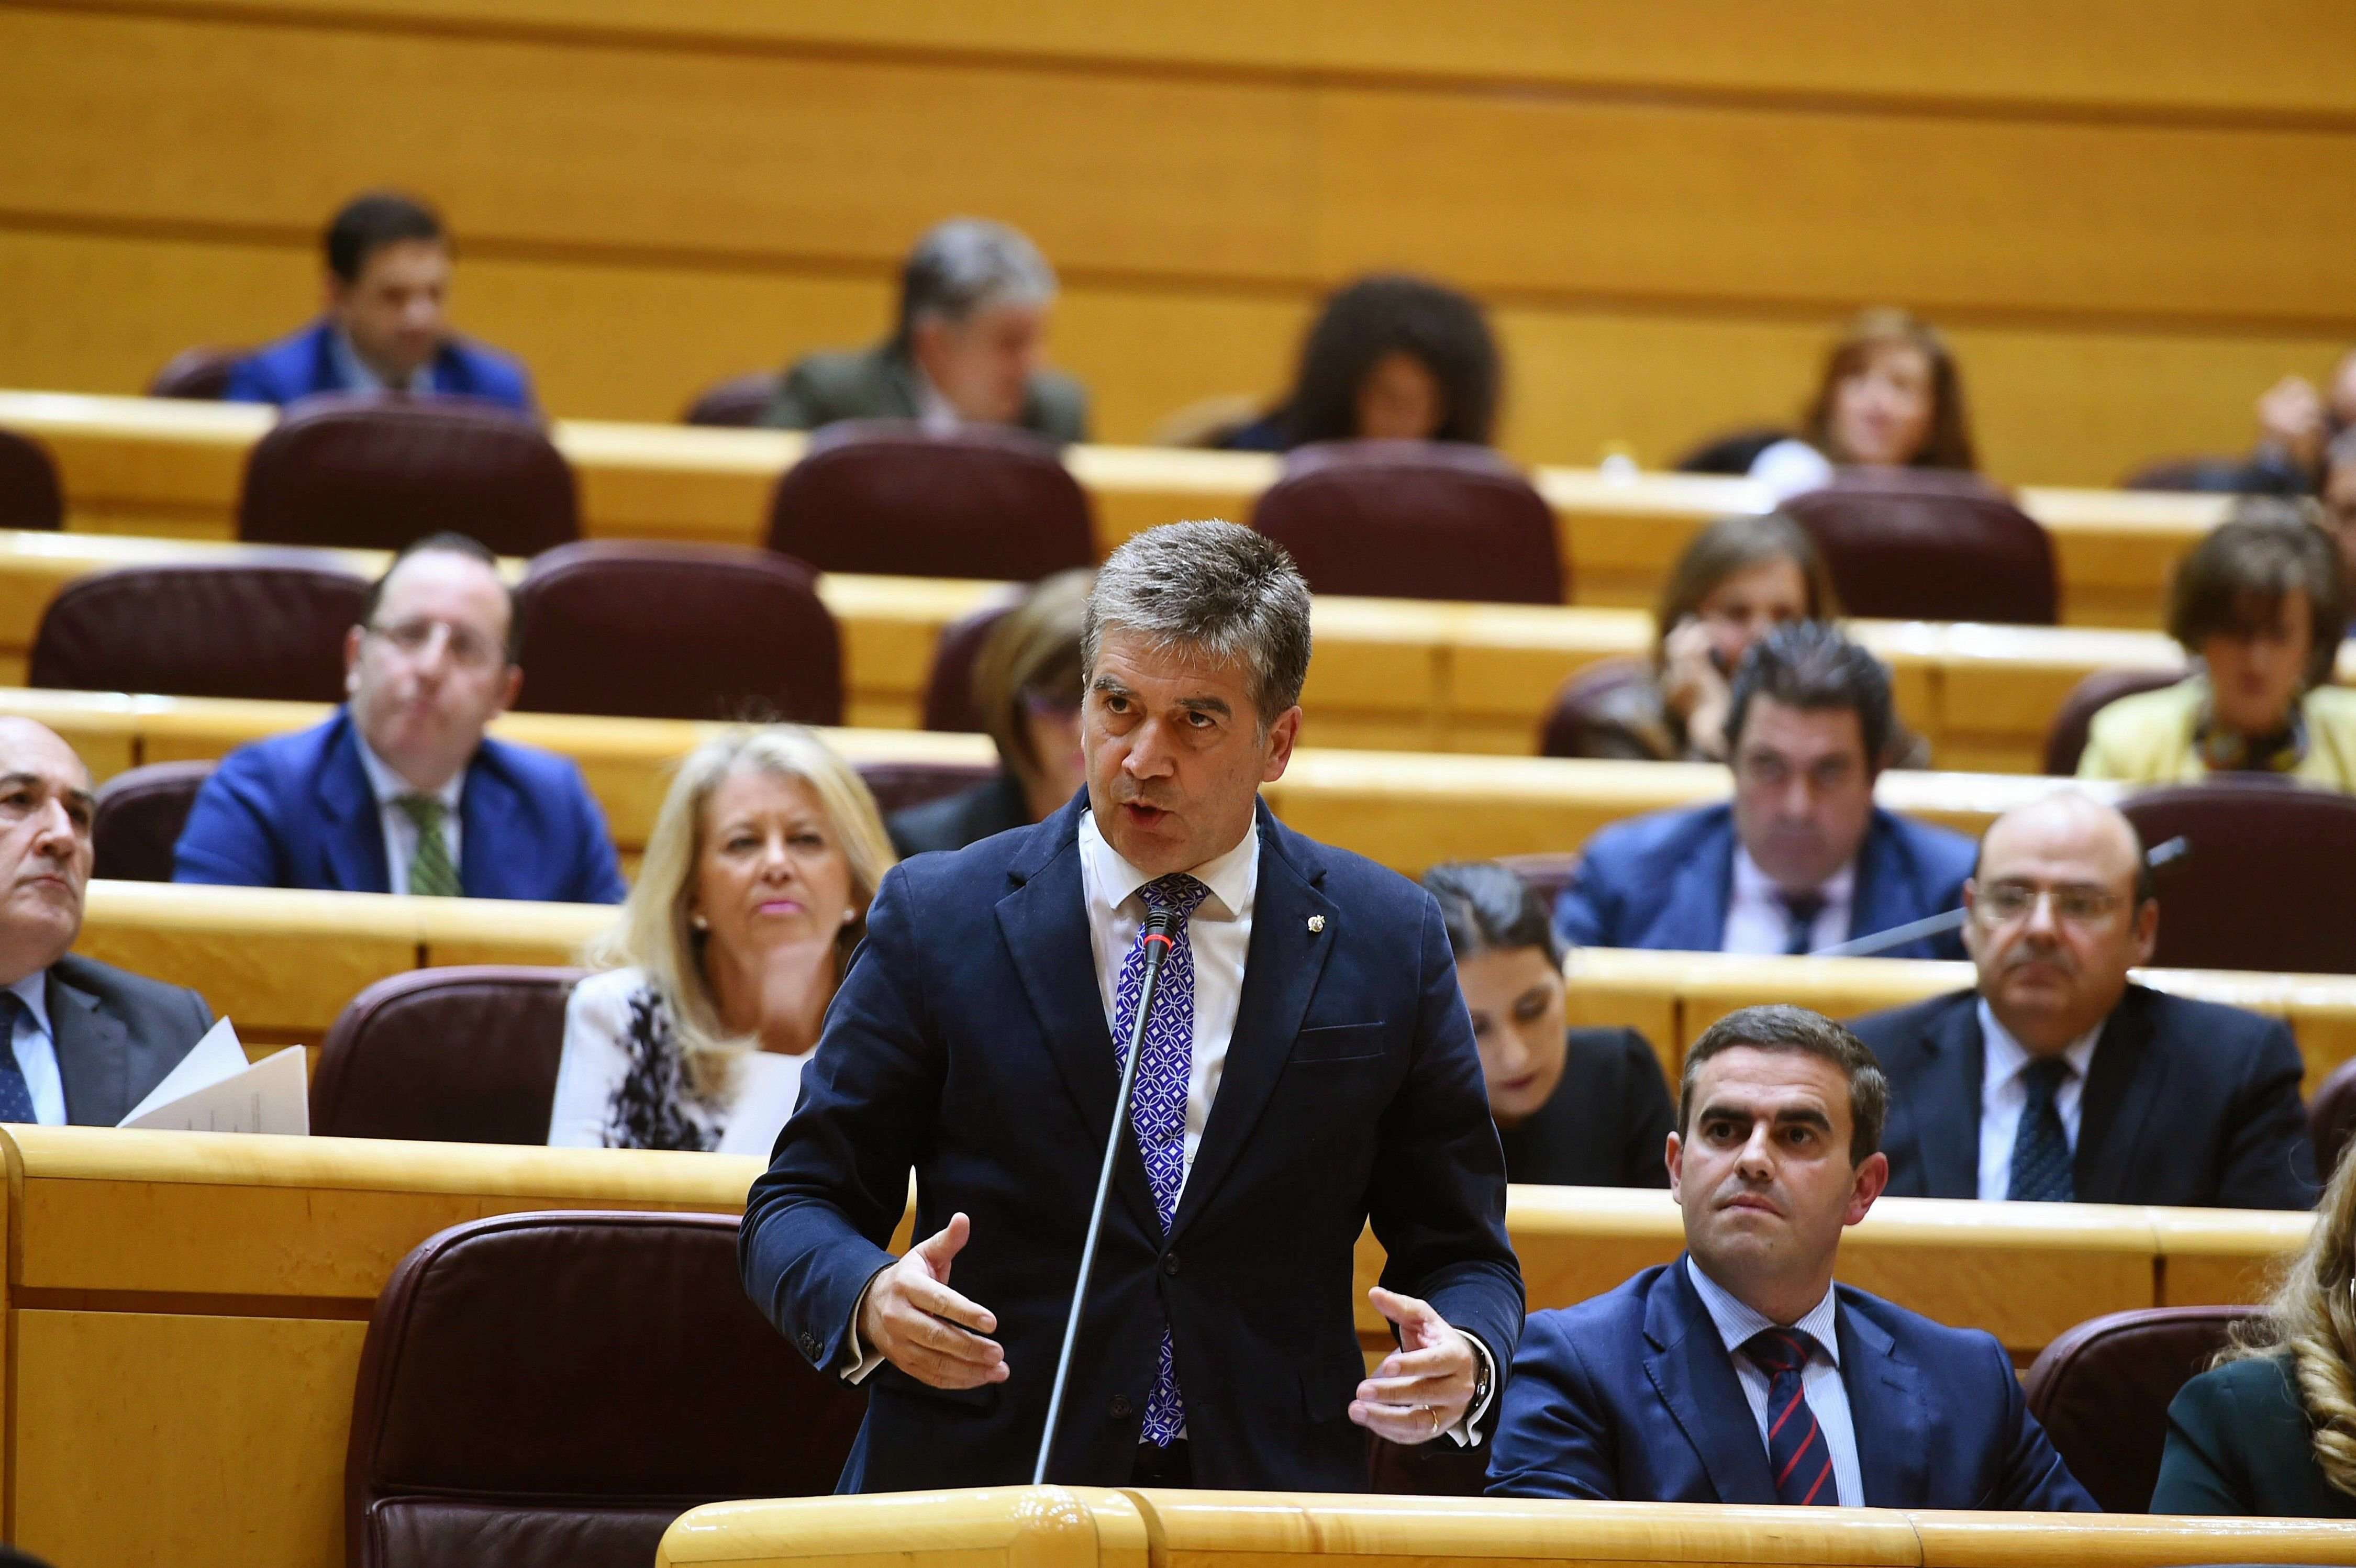 PP boasts of gaining control of the Supreme Court in pact with PSOE